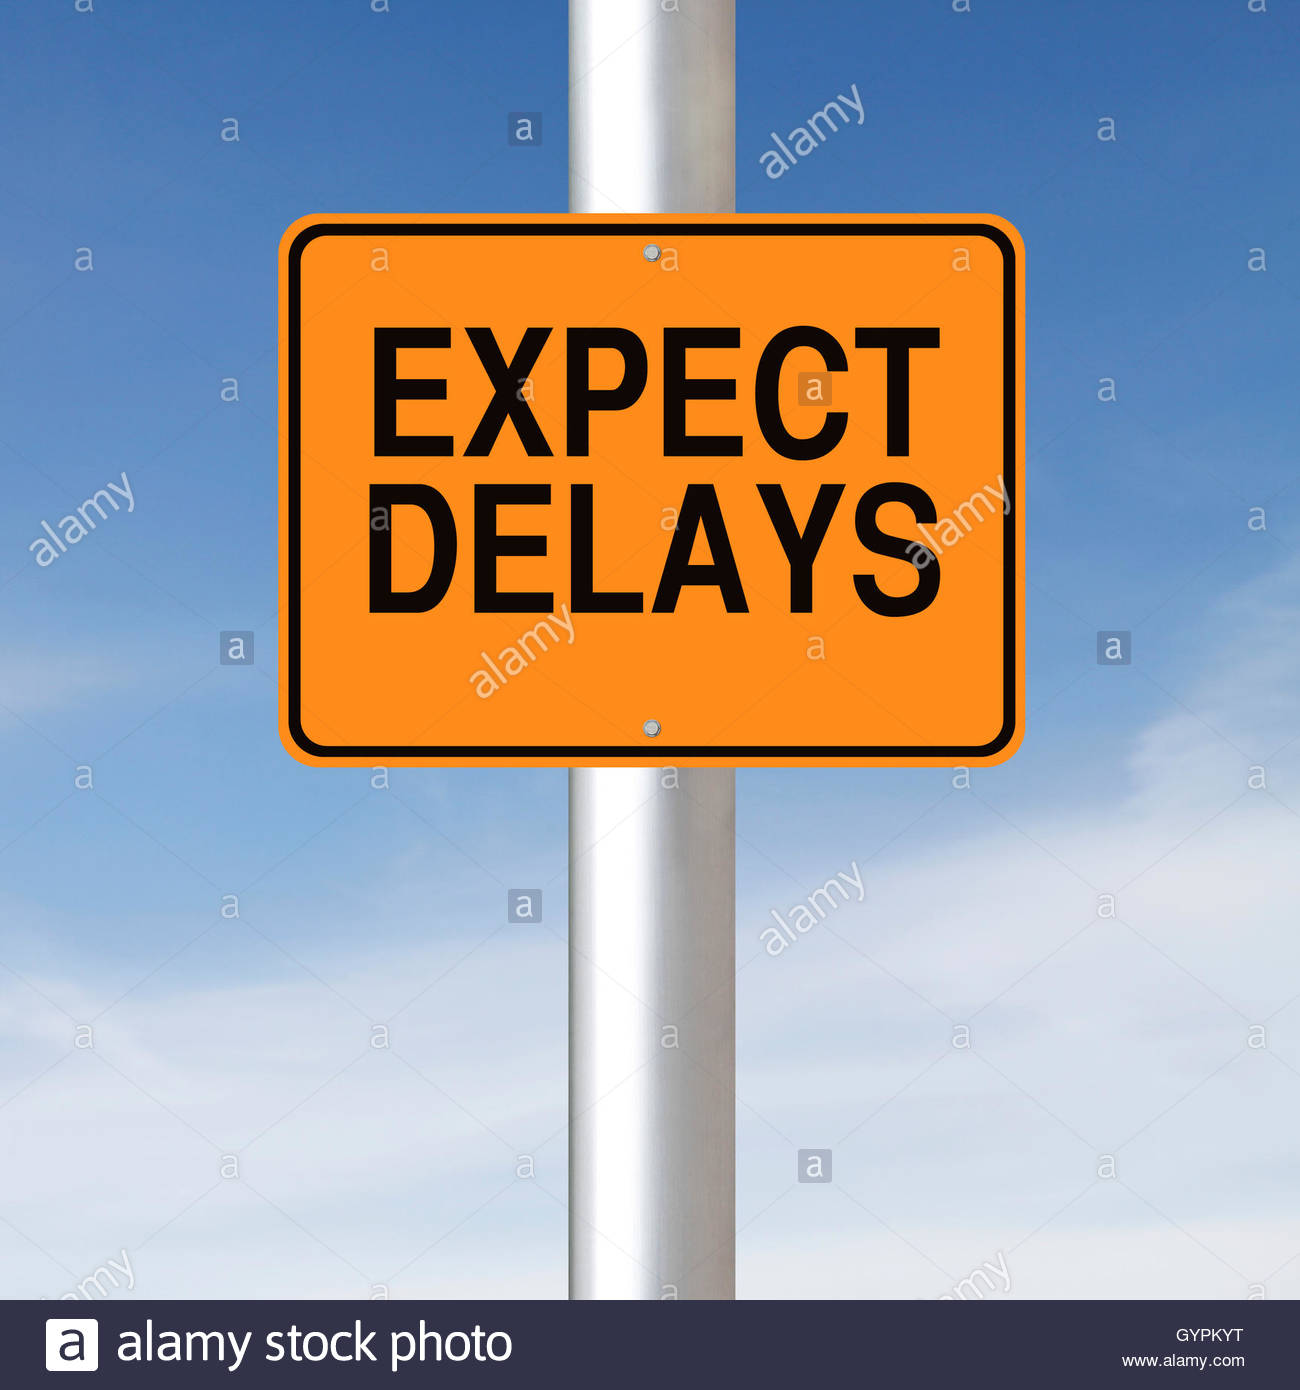 Expect Delays - Stock Image